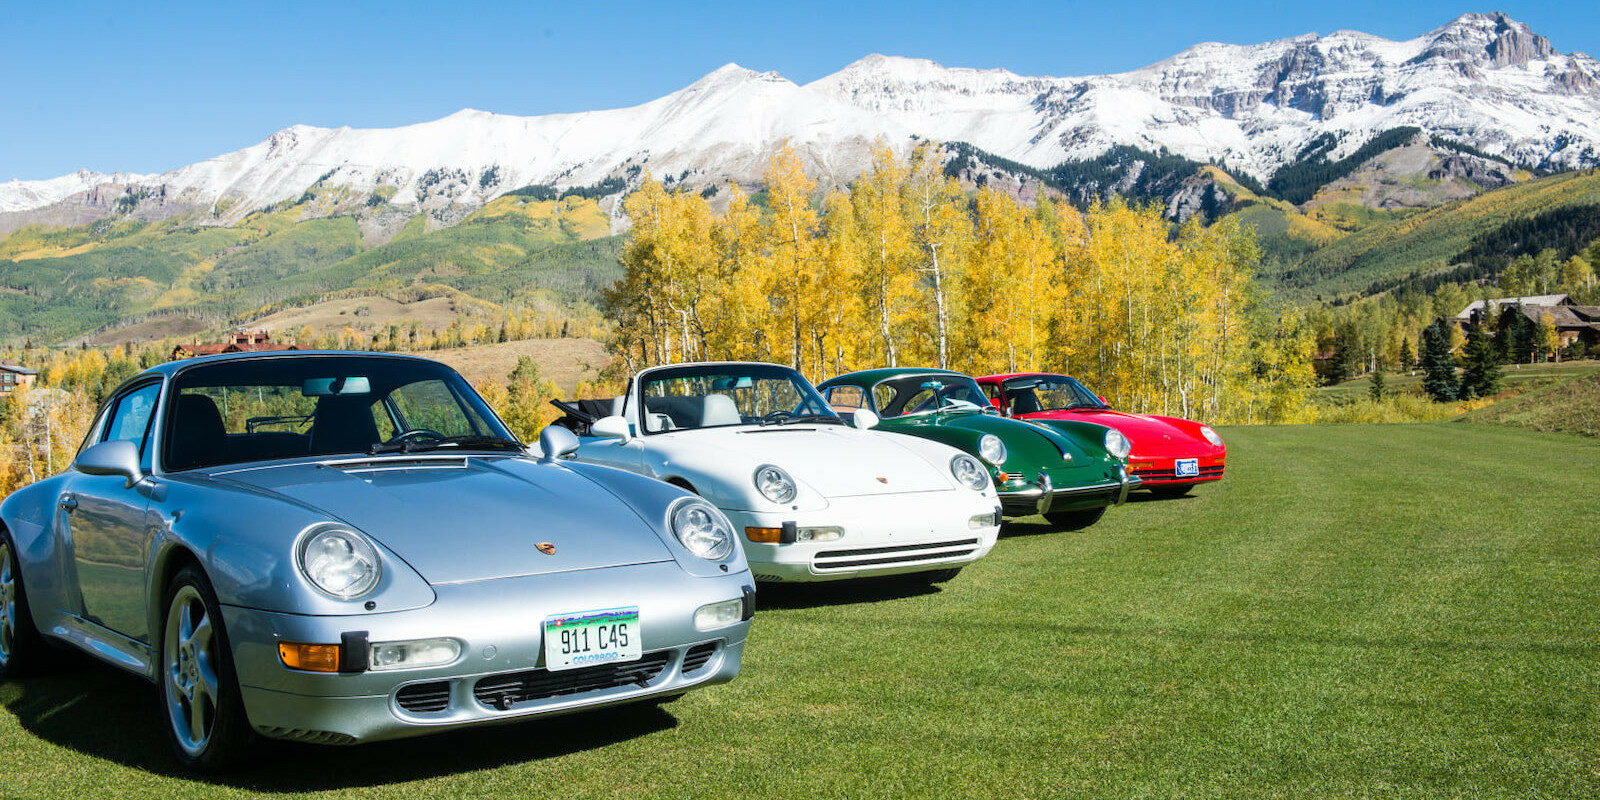 Image of cars lined up for the Telluride Autumn Classic in Colorado